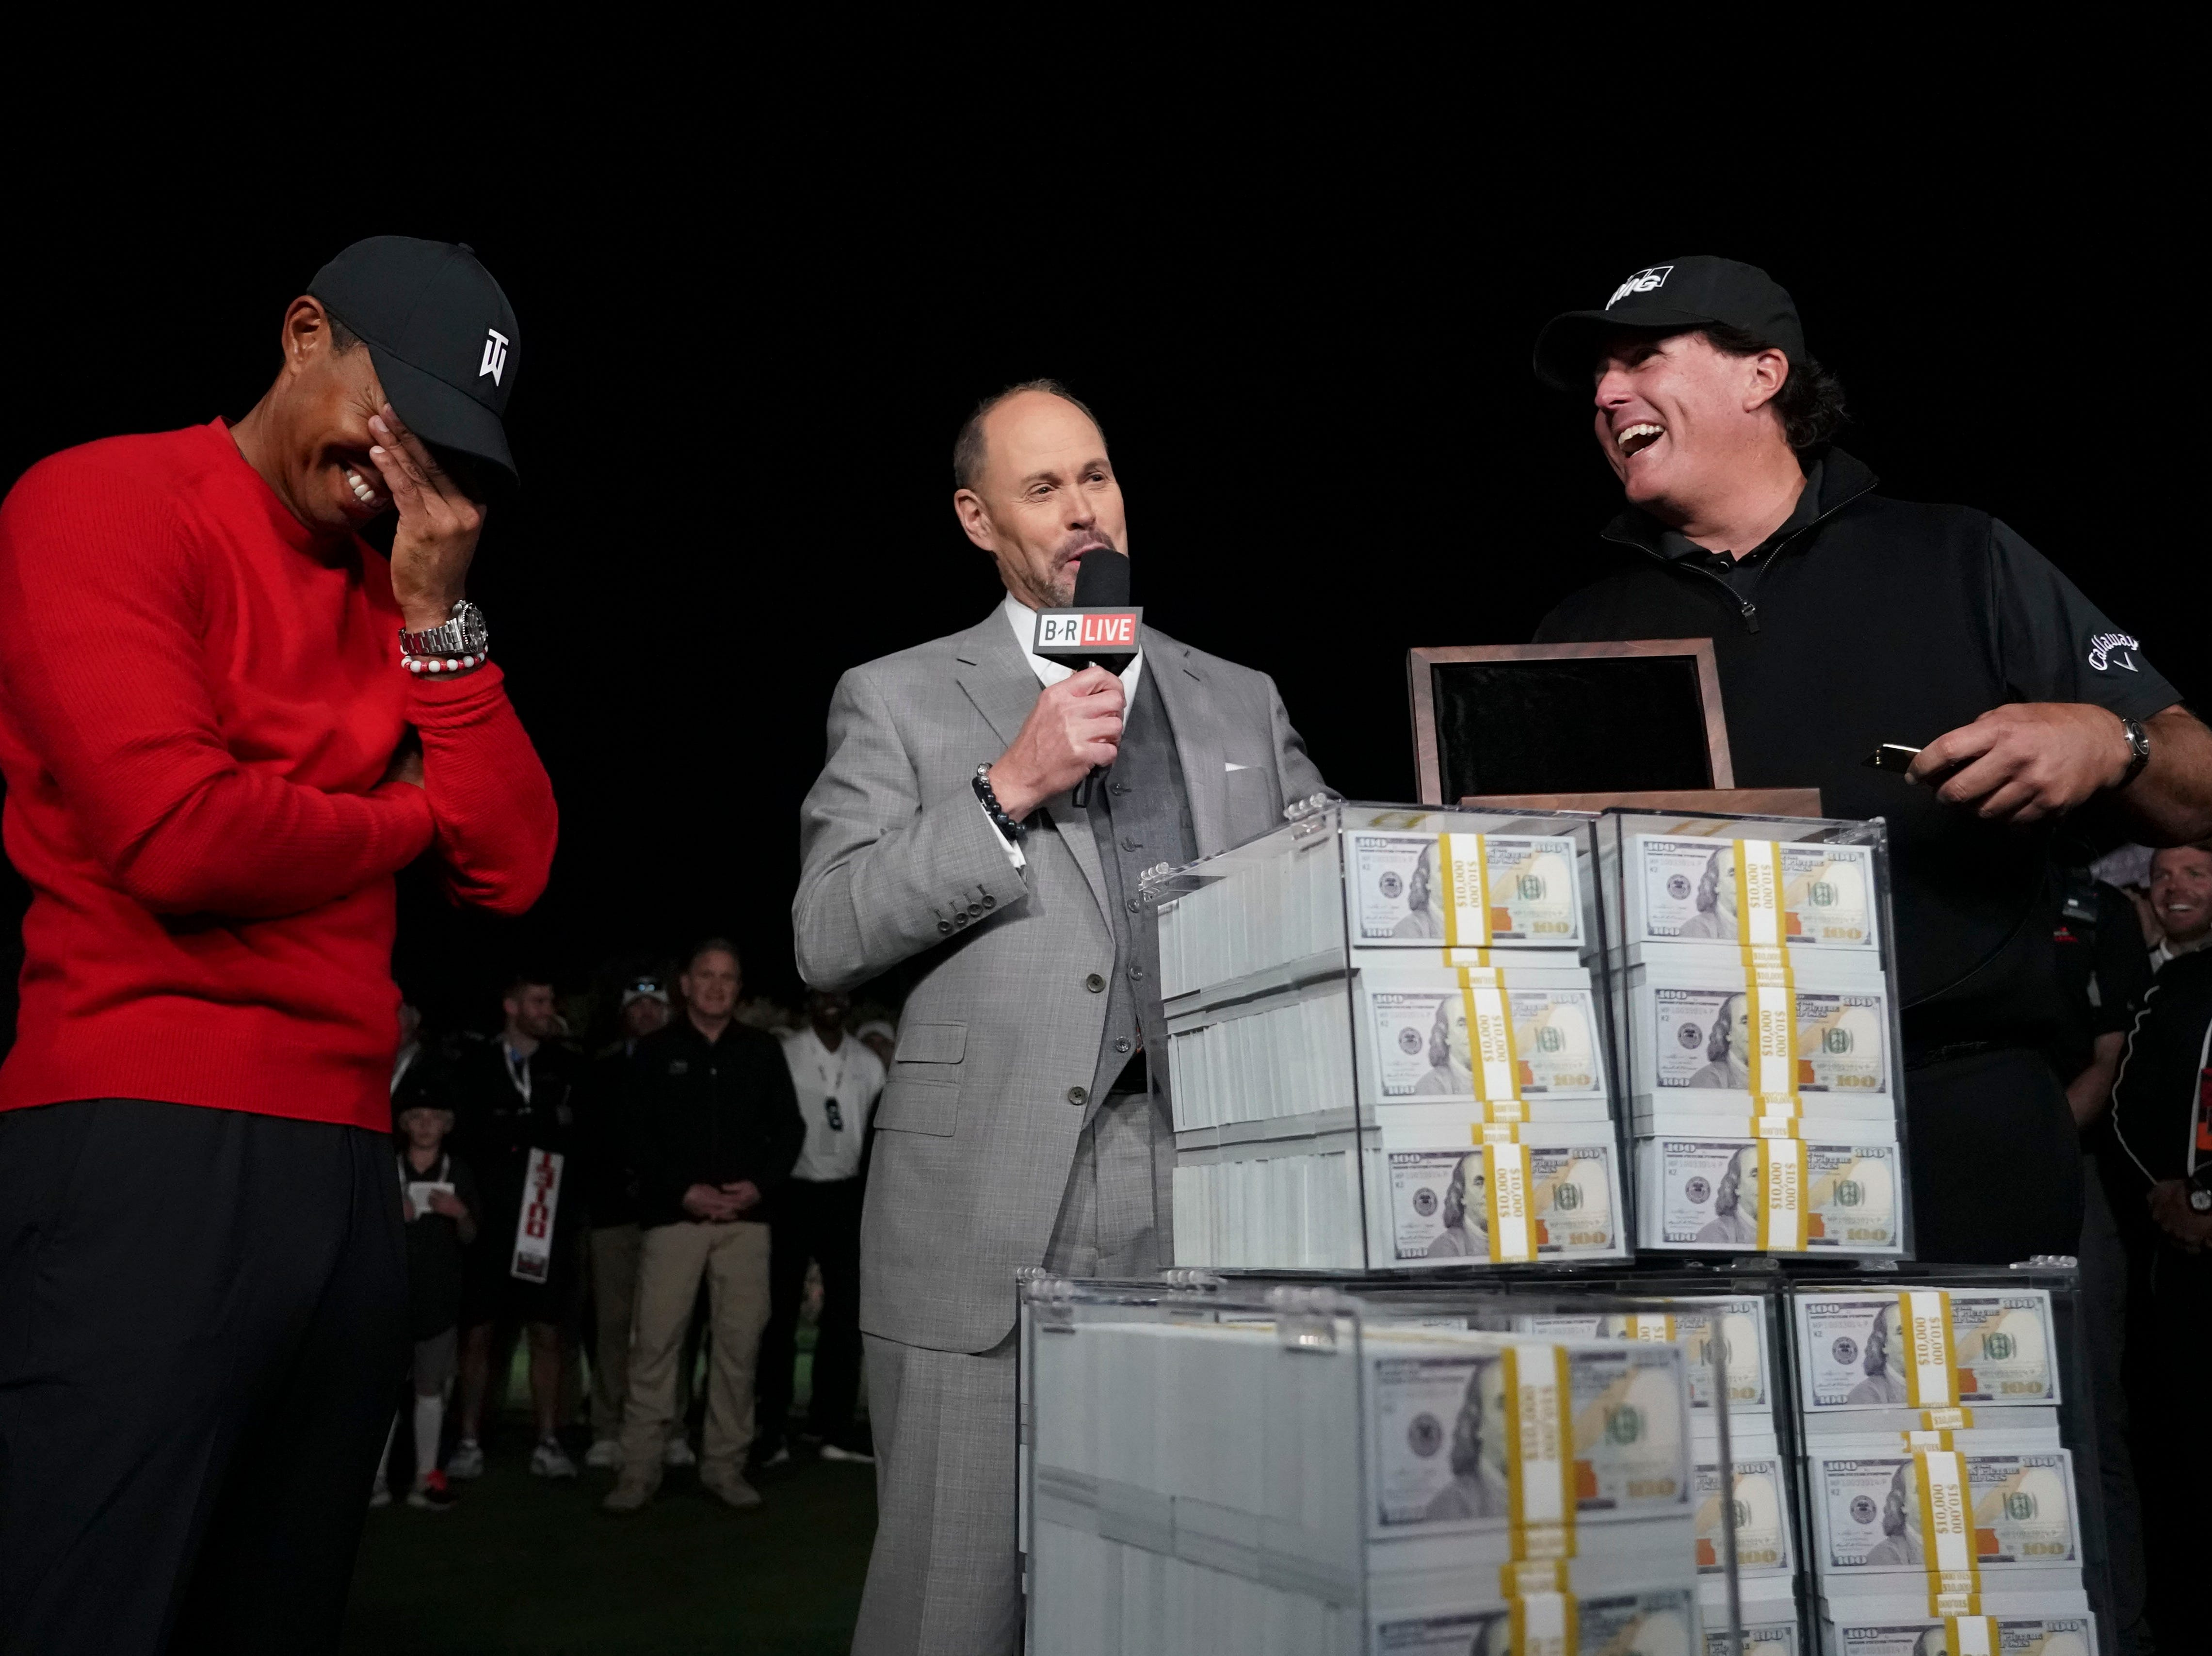 Nov. 23: Phil Mickelson reacts after the winner's belt didn't fit as Tiger Woods looks on after The Match.